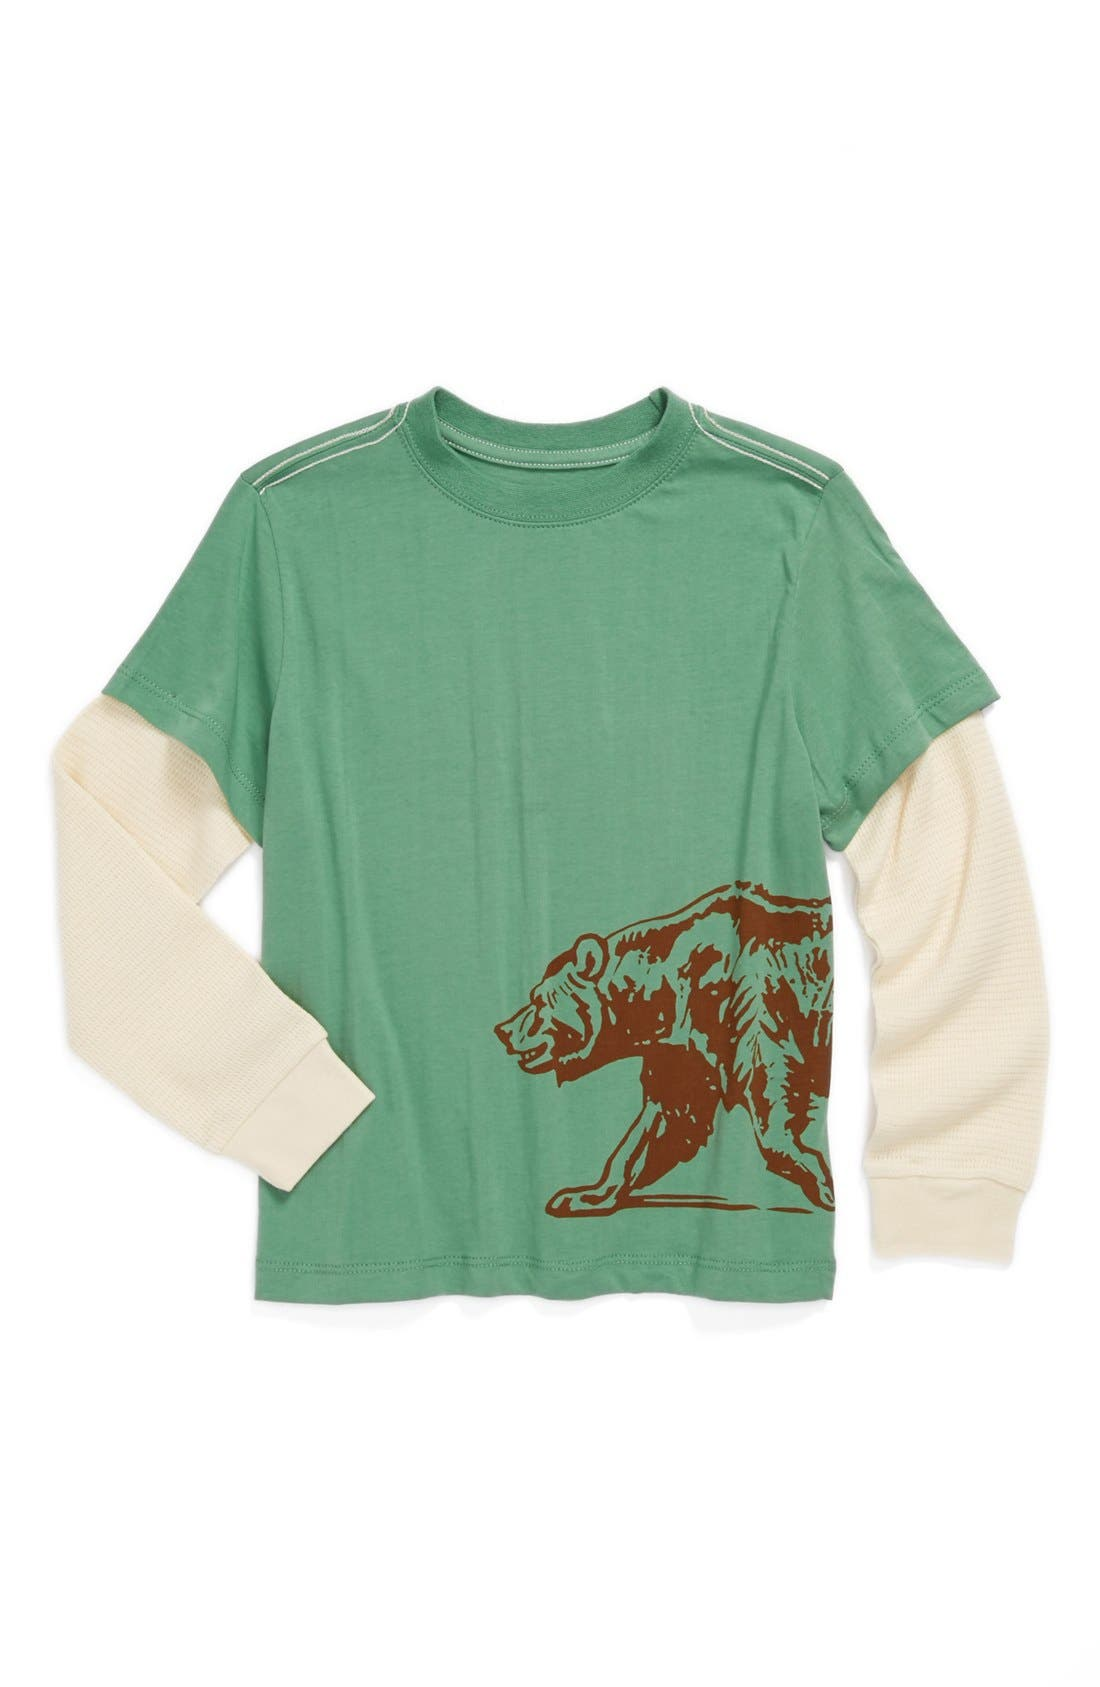 Alternate Image 1 Selected - Peek 'Bear' T-Shirt (Toddler Boys, Little Boys & Big Boys)